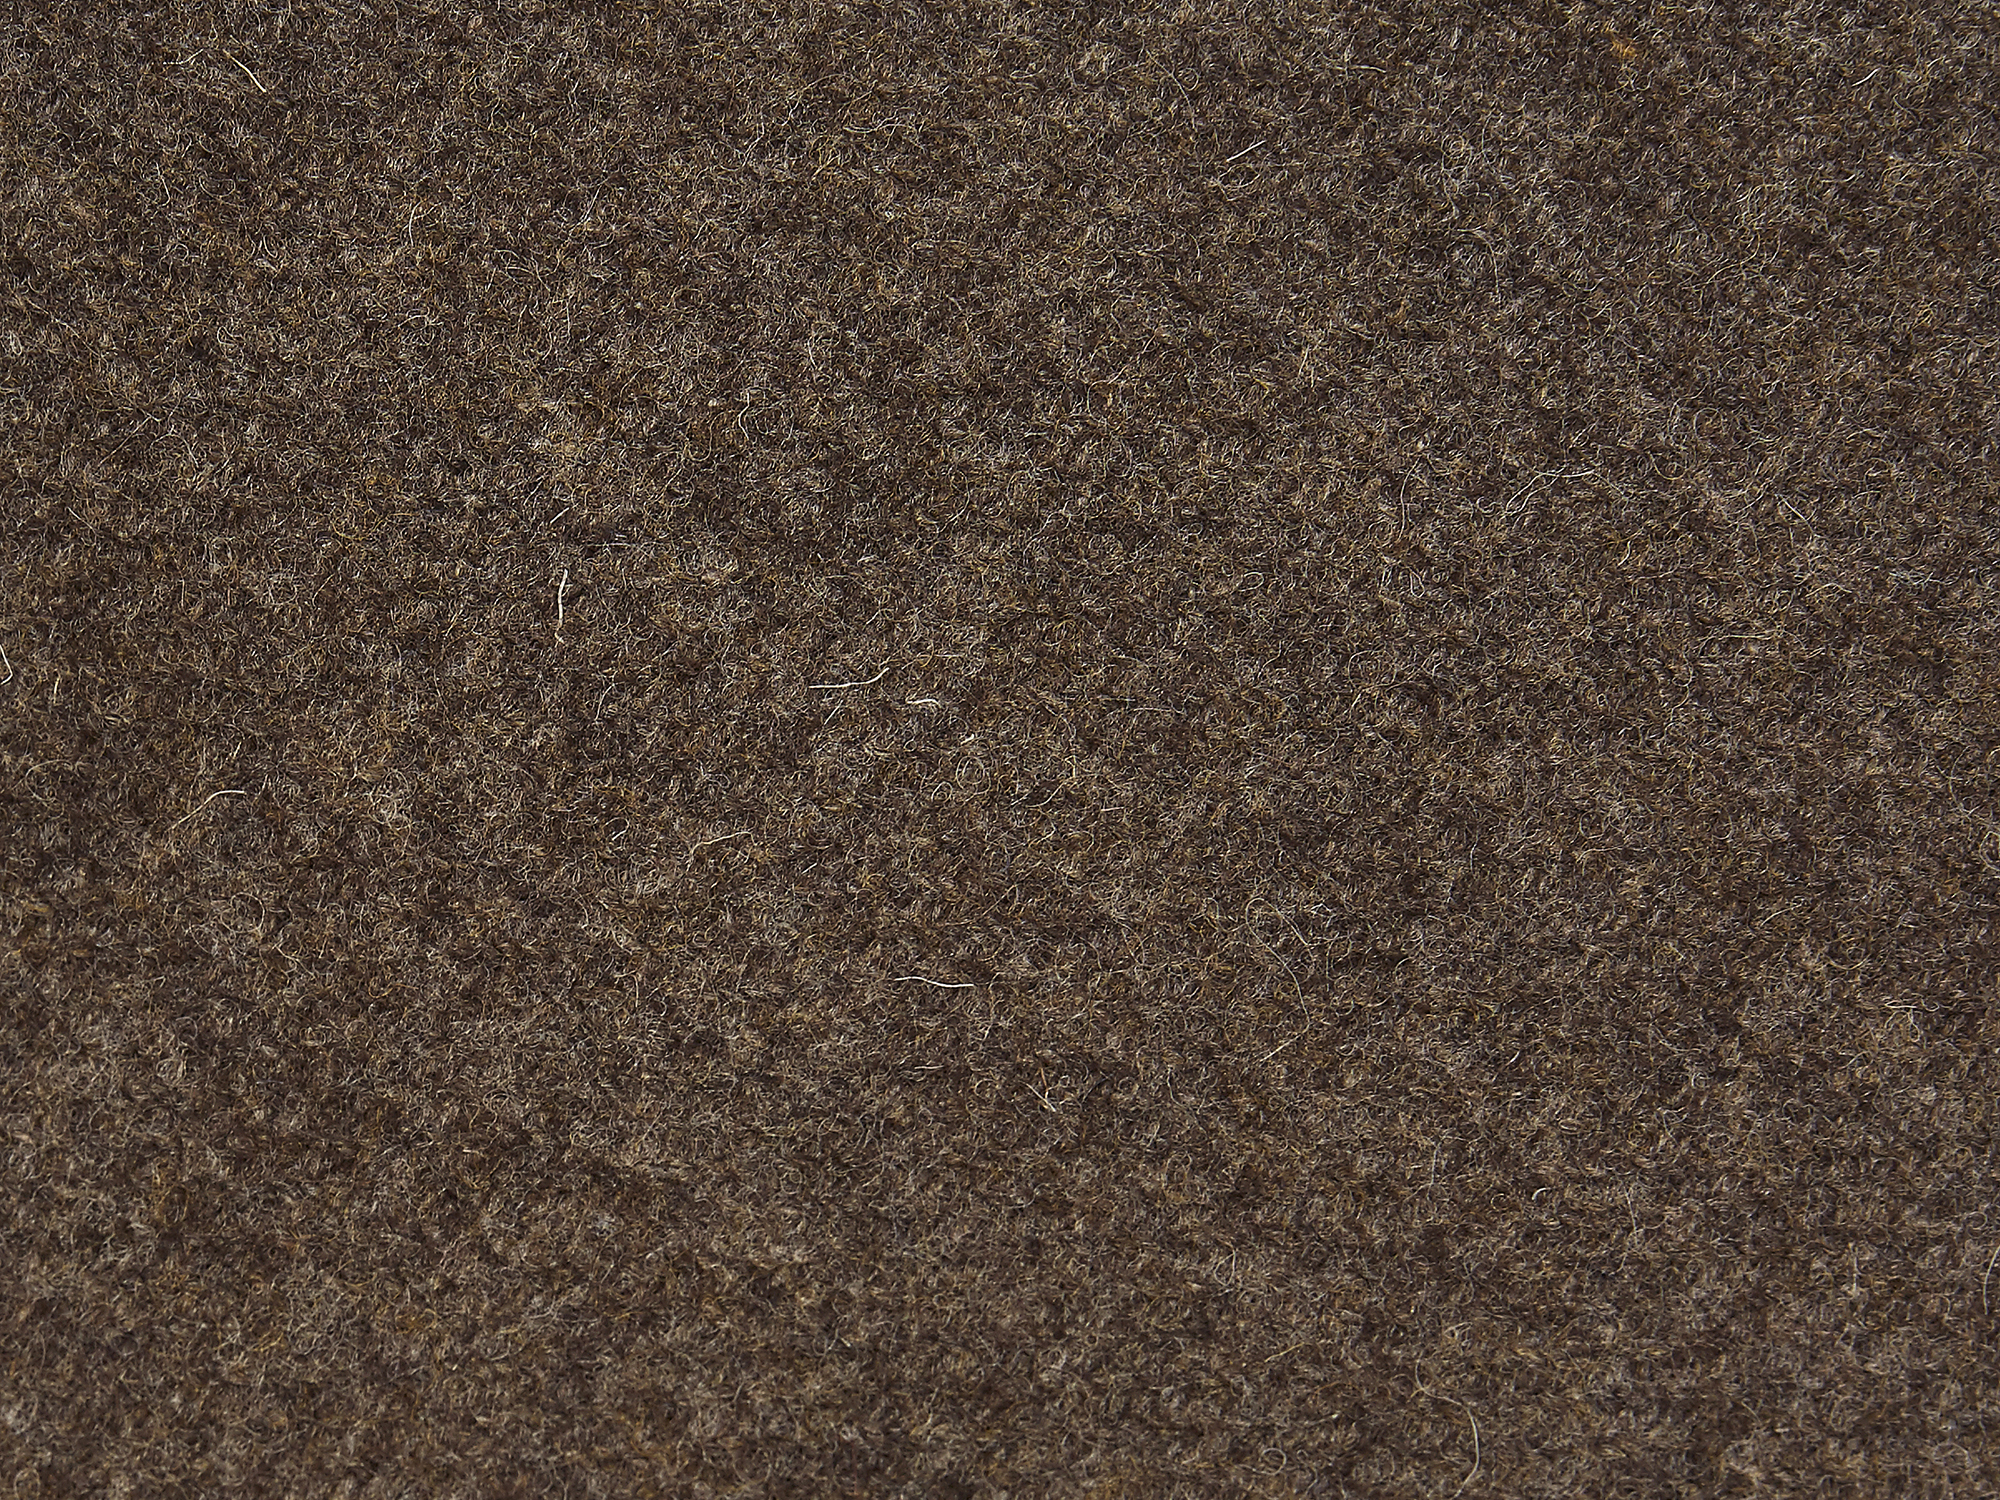 ITEM-26_BROWN_03.jpg